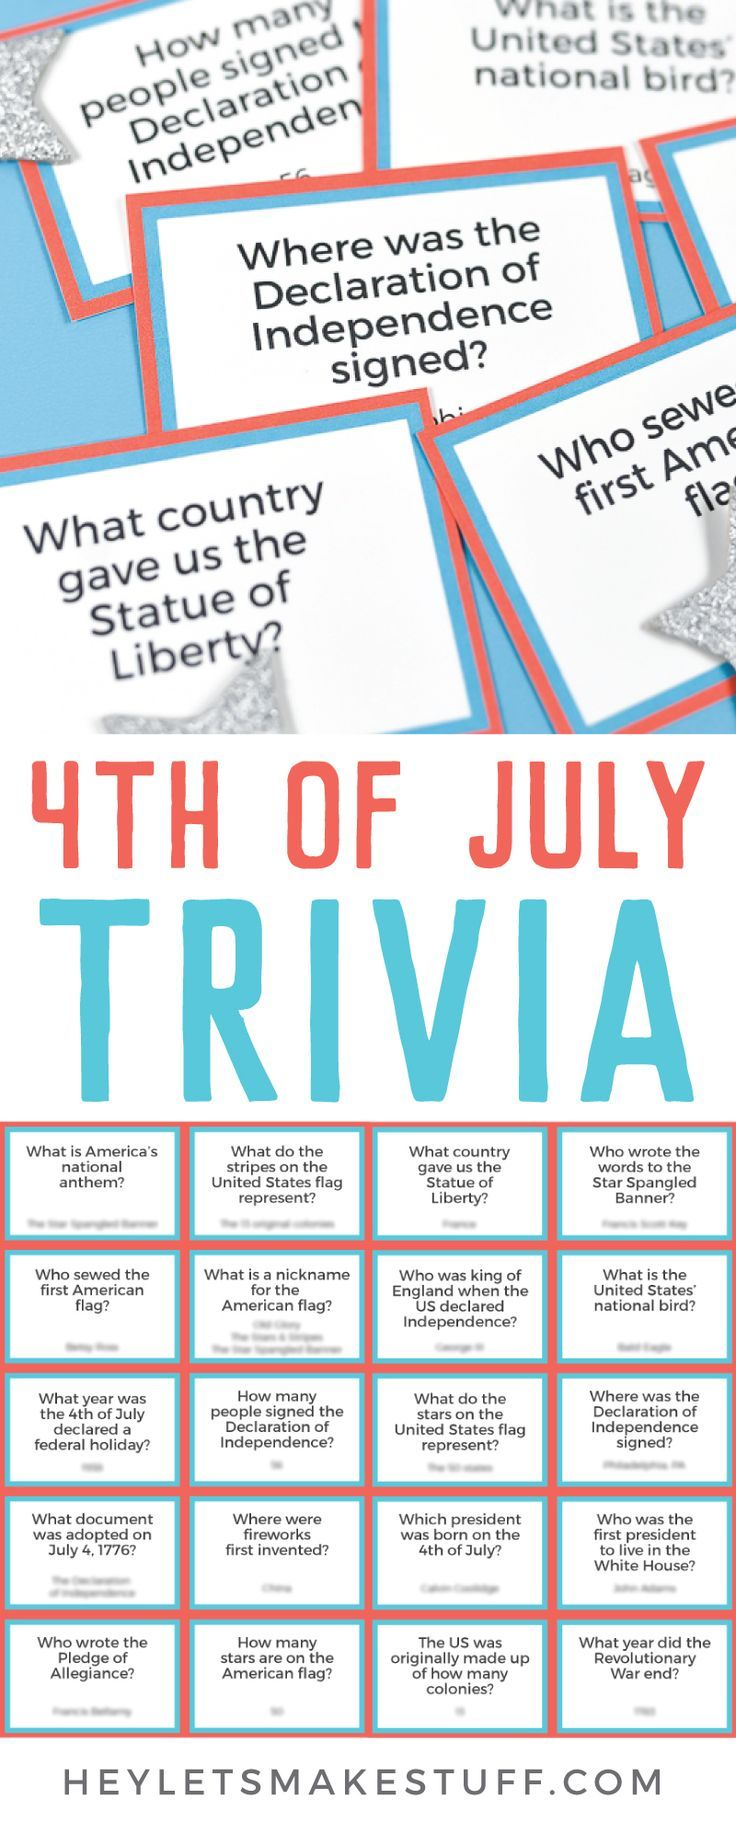 picture about 4th of July Trivia Printable referred to as Printable Fourth of July Trivia Fourth of July 4th of